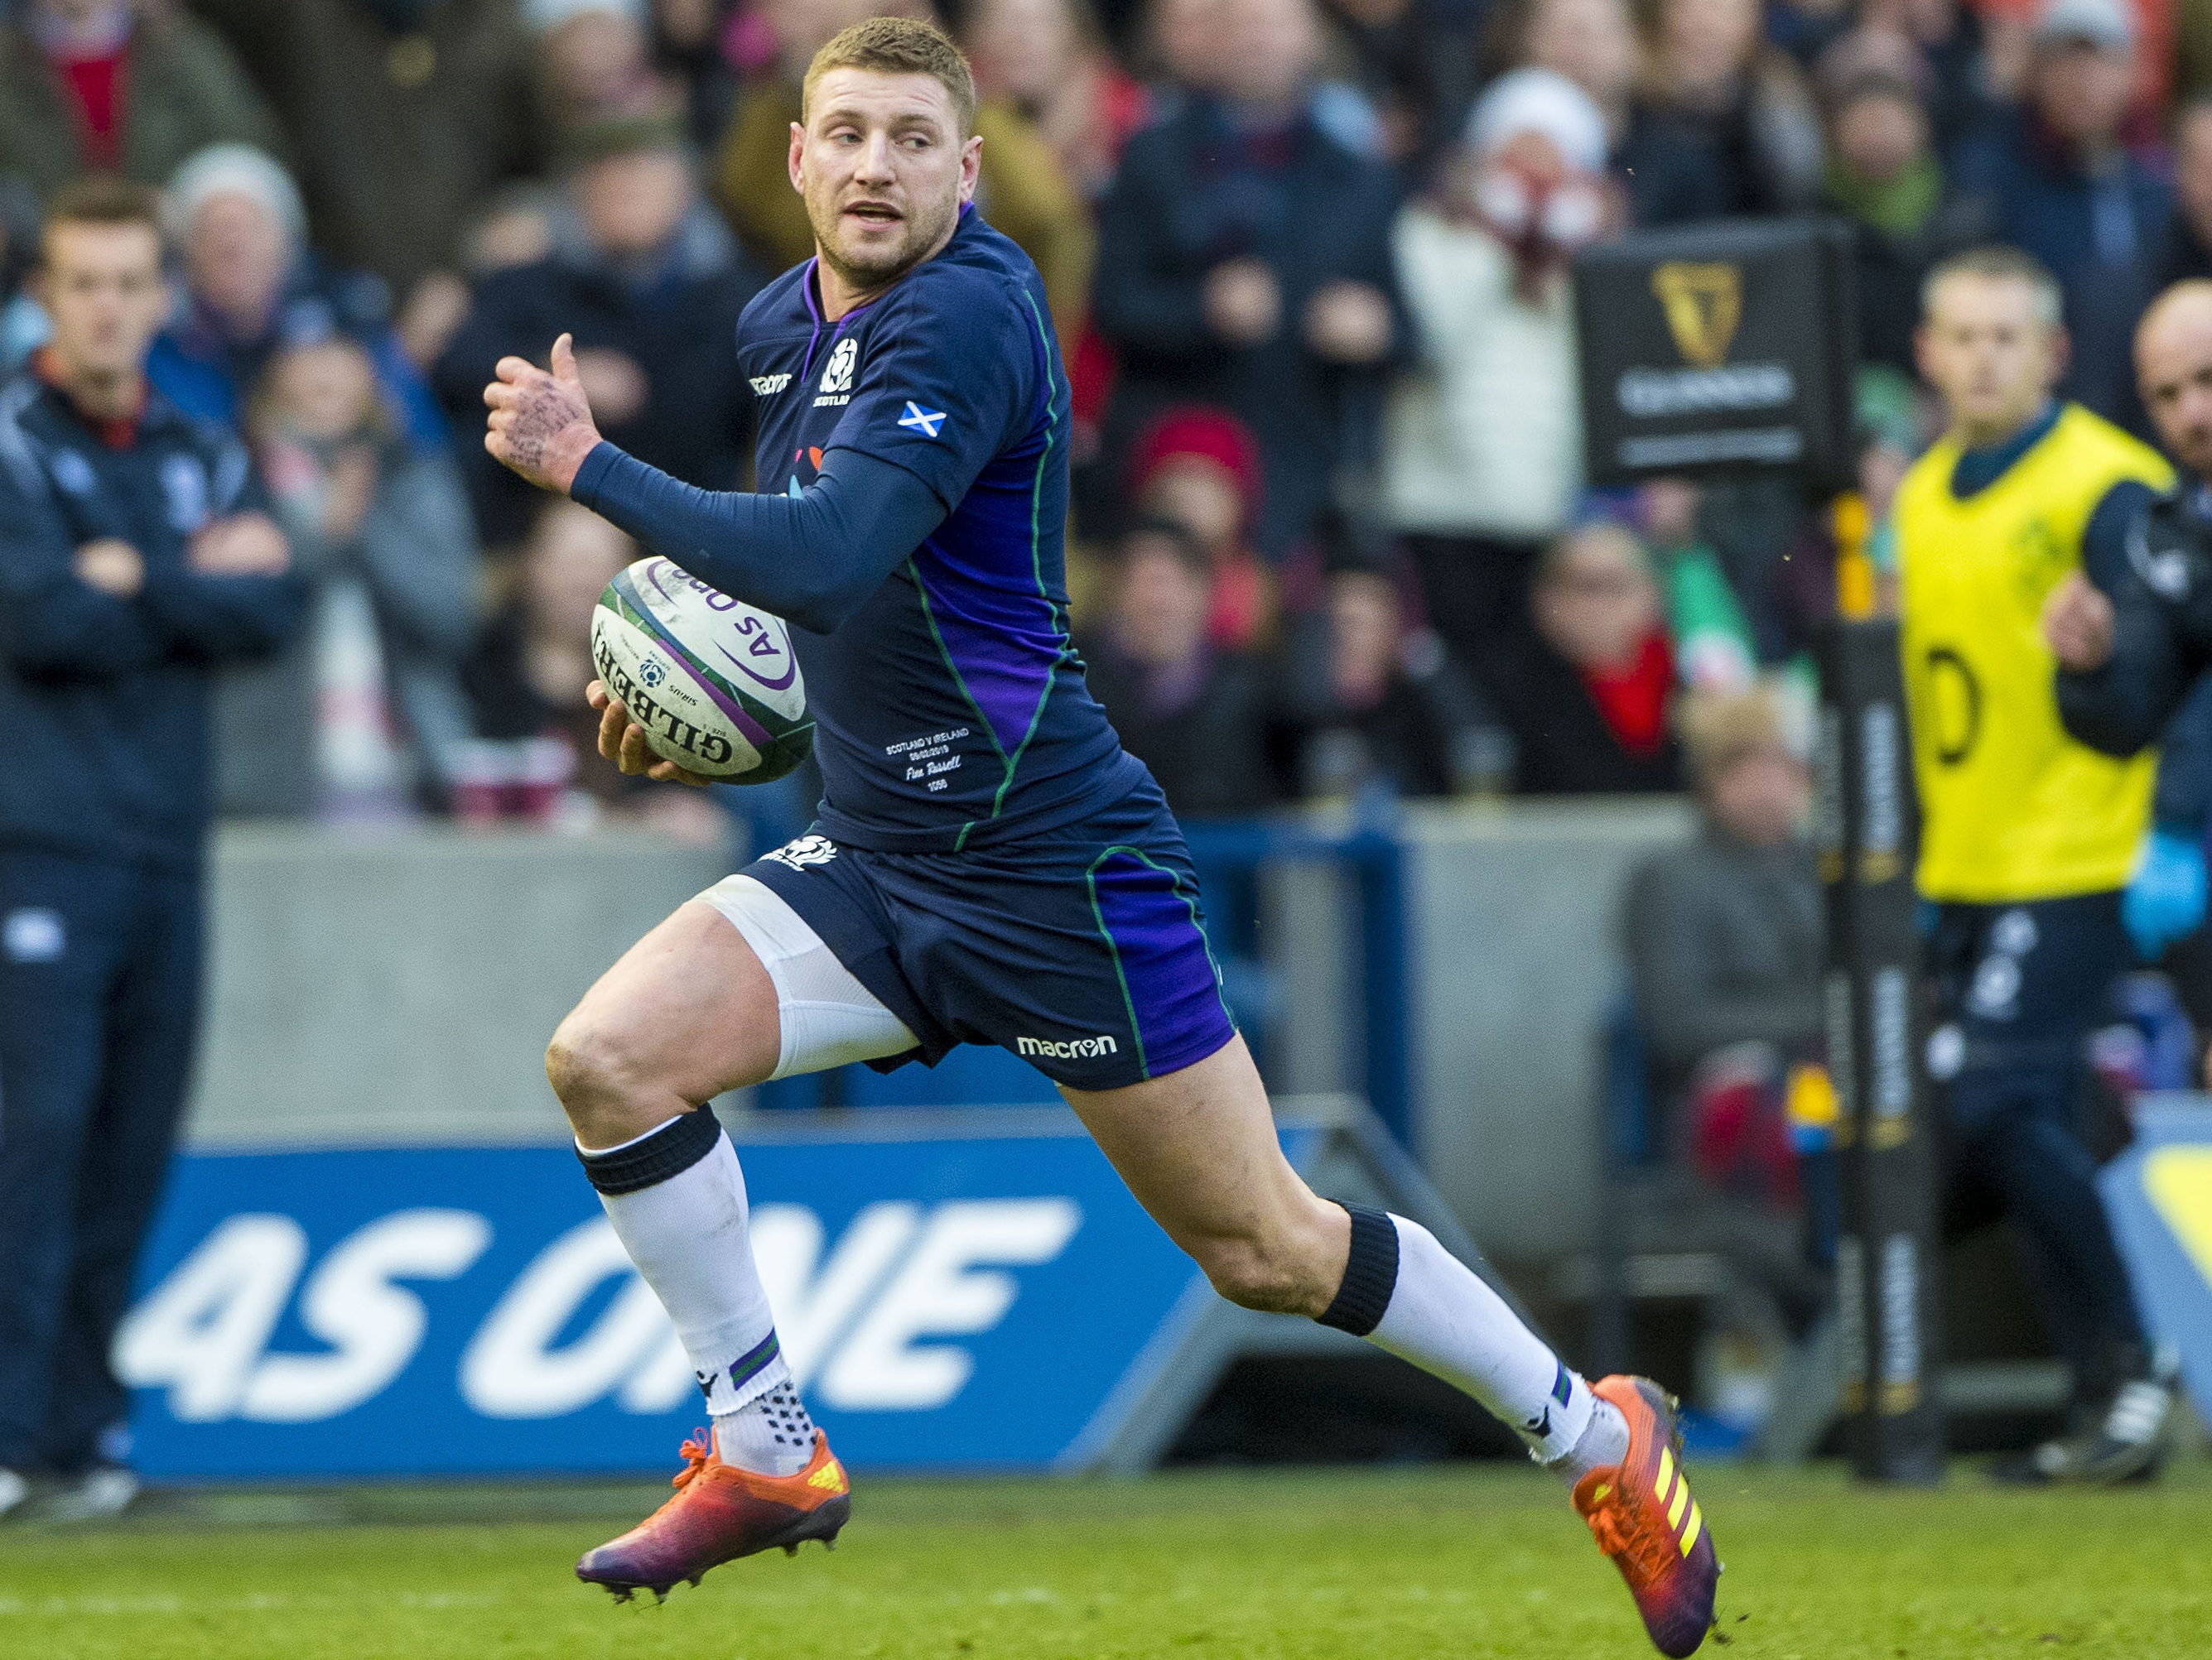 Finn Russell in action for Scotland.